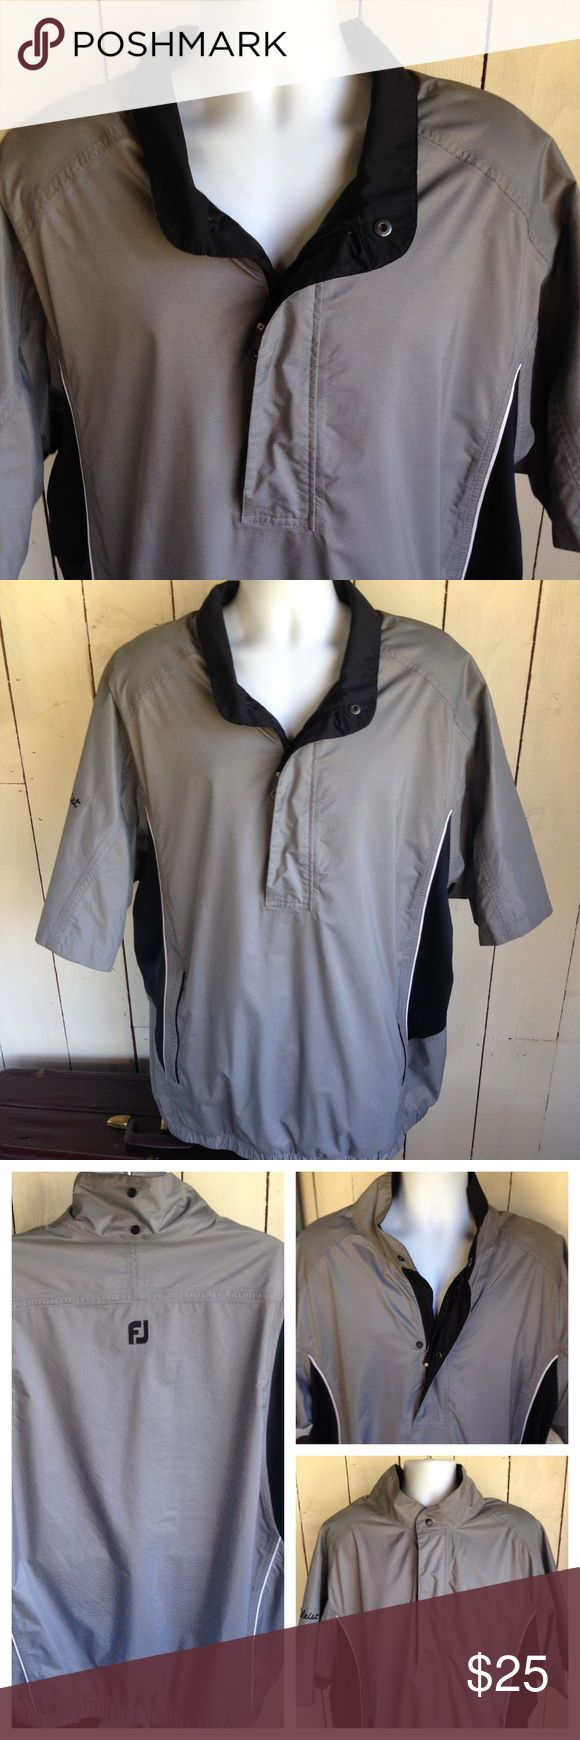 DRYJOYS,FOITJOYS Titleist Golf Jacket SIZE XXL Stay dry on the golf course in this DRYJOYS golf jacket. Elastic waist, Short Sleeve, 2 pockets that zip shut. Small 1 cm rip where it got caught by a branch - see 4th picture. Otherwise in very good condition. Please let me know if you have any questions. Footjoys Jackets & Coats Windbreakers